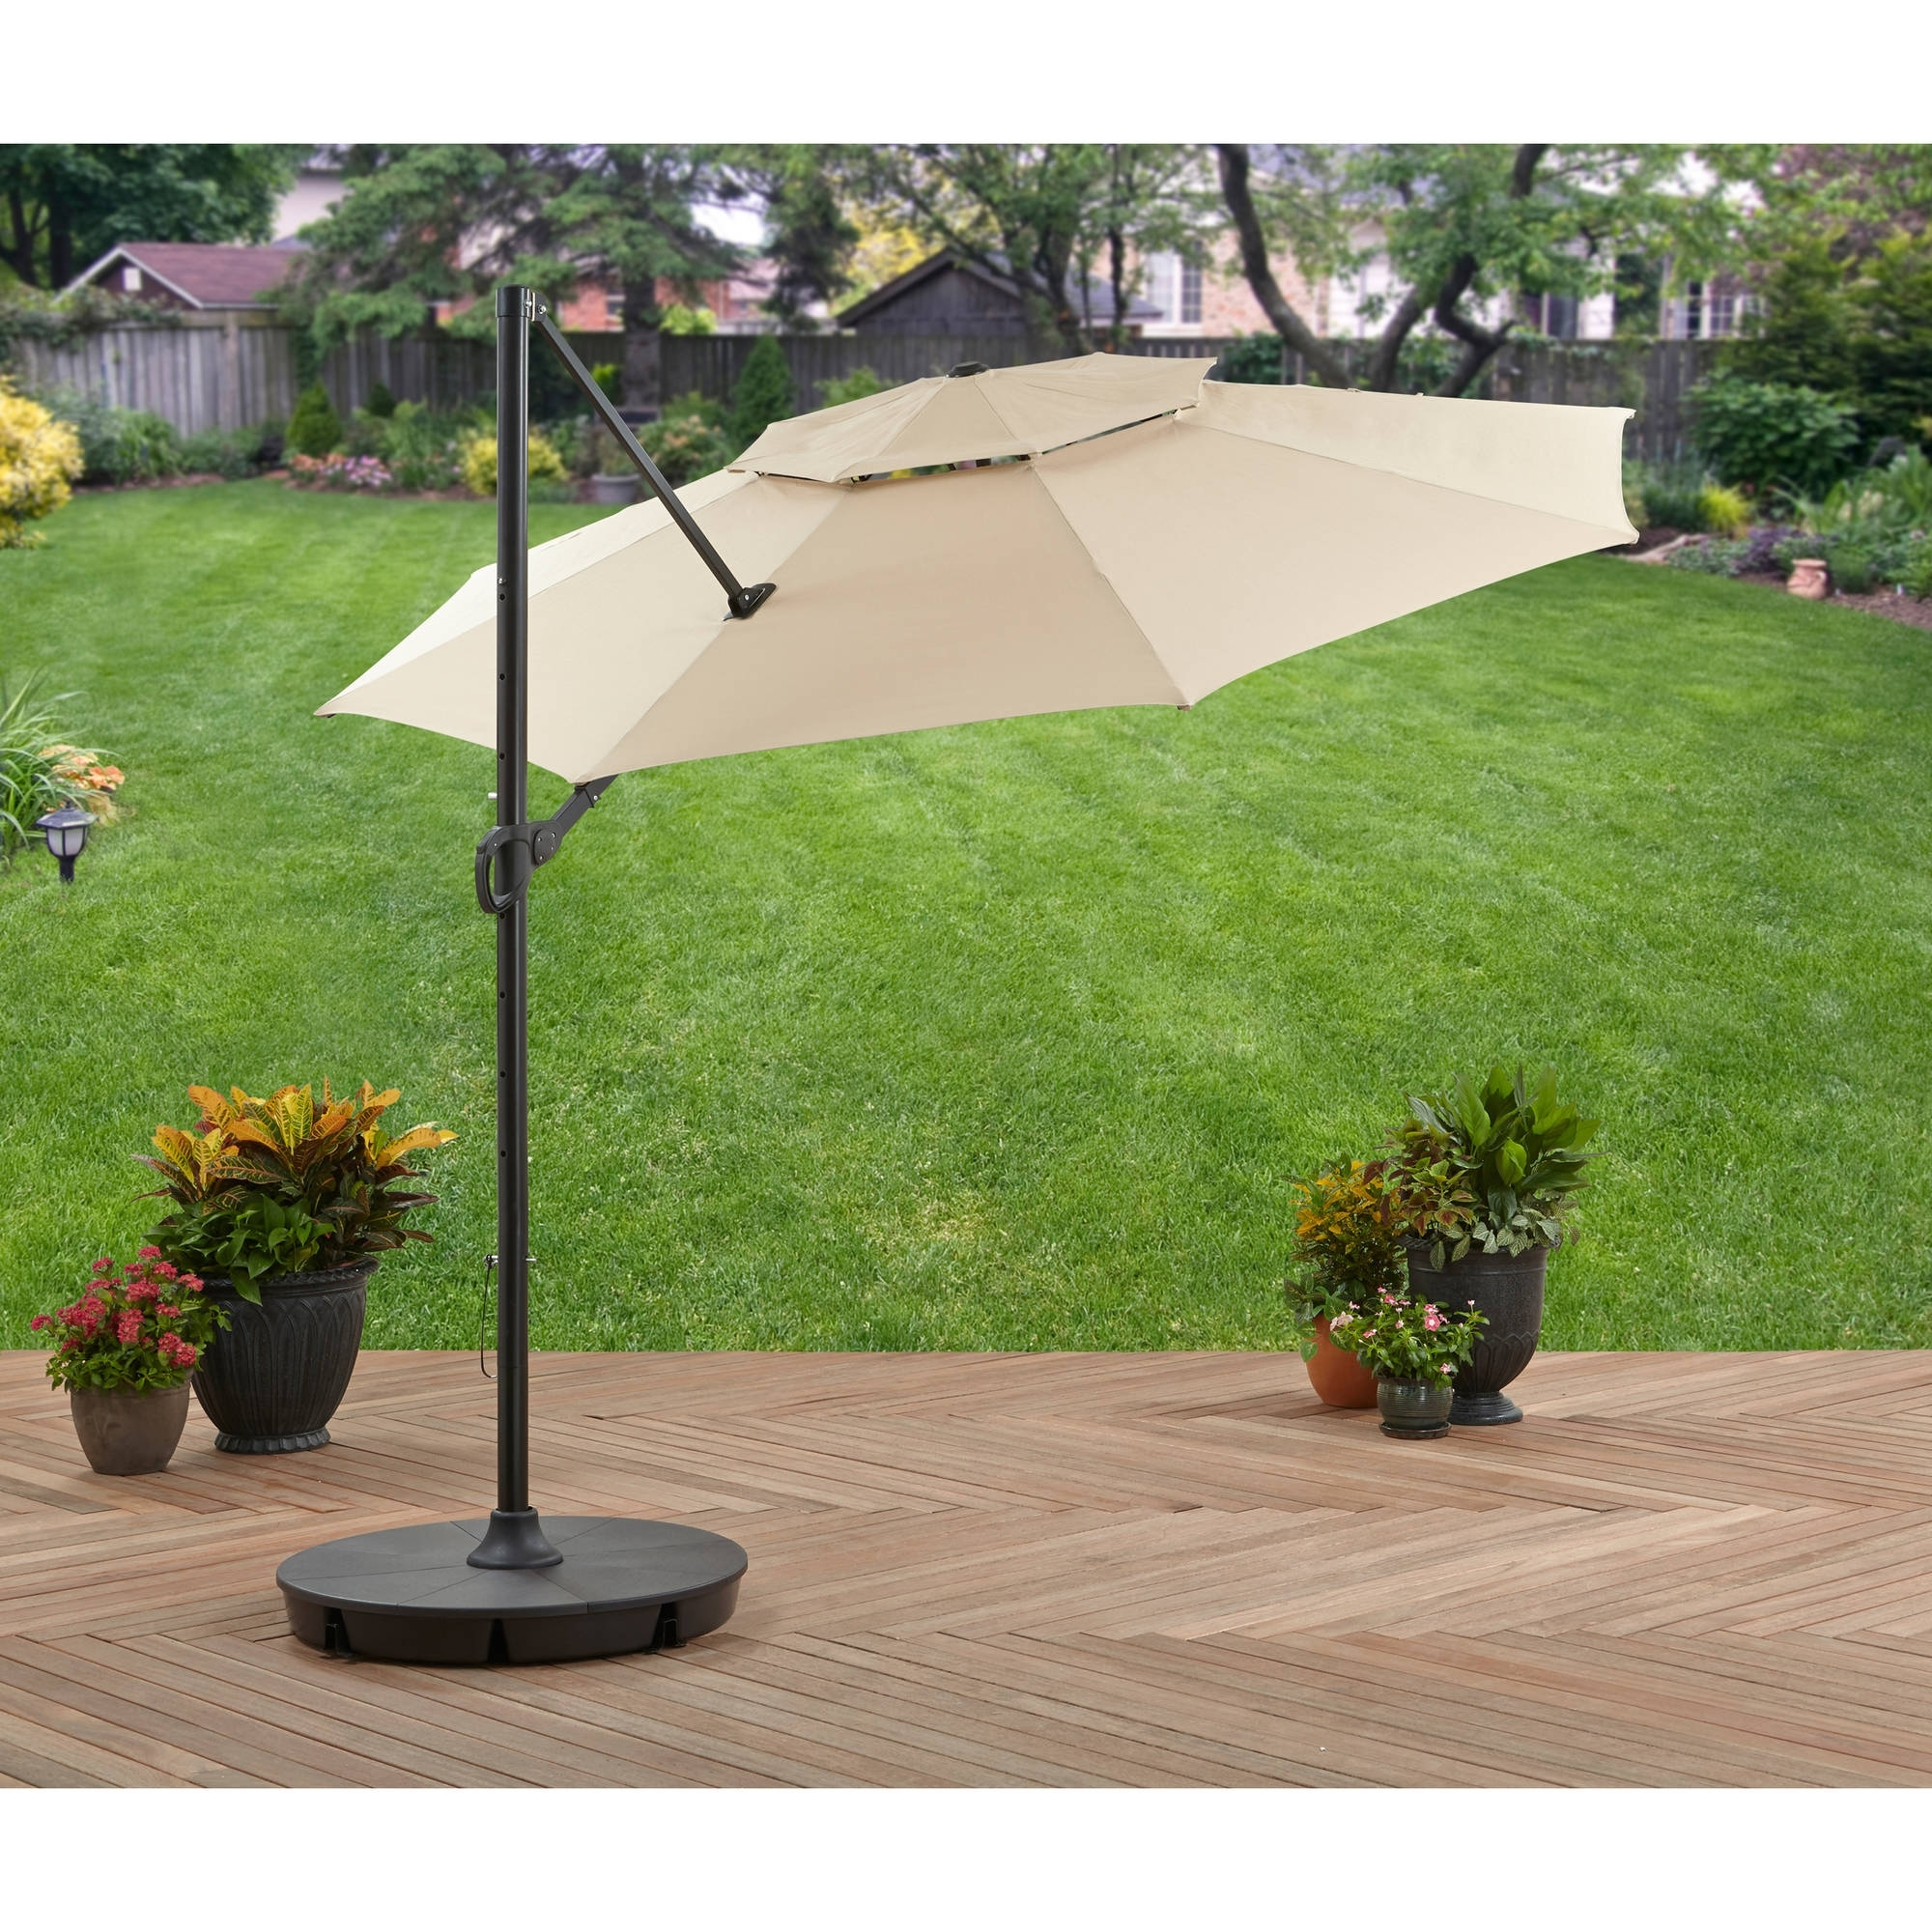 Newest Walmart Umbrellas Patio Within Better Homes And Gardens 11' Offset Umbrella With Base, Tan (View 16 of 20)